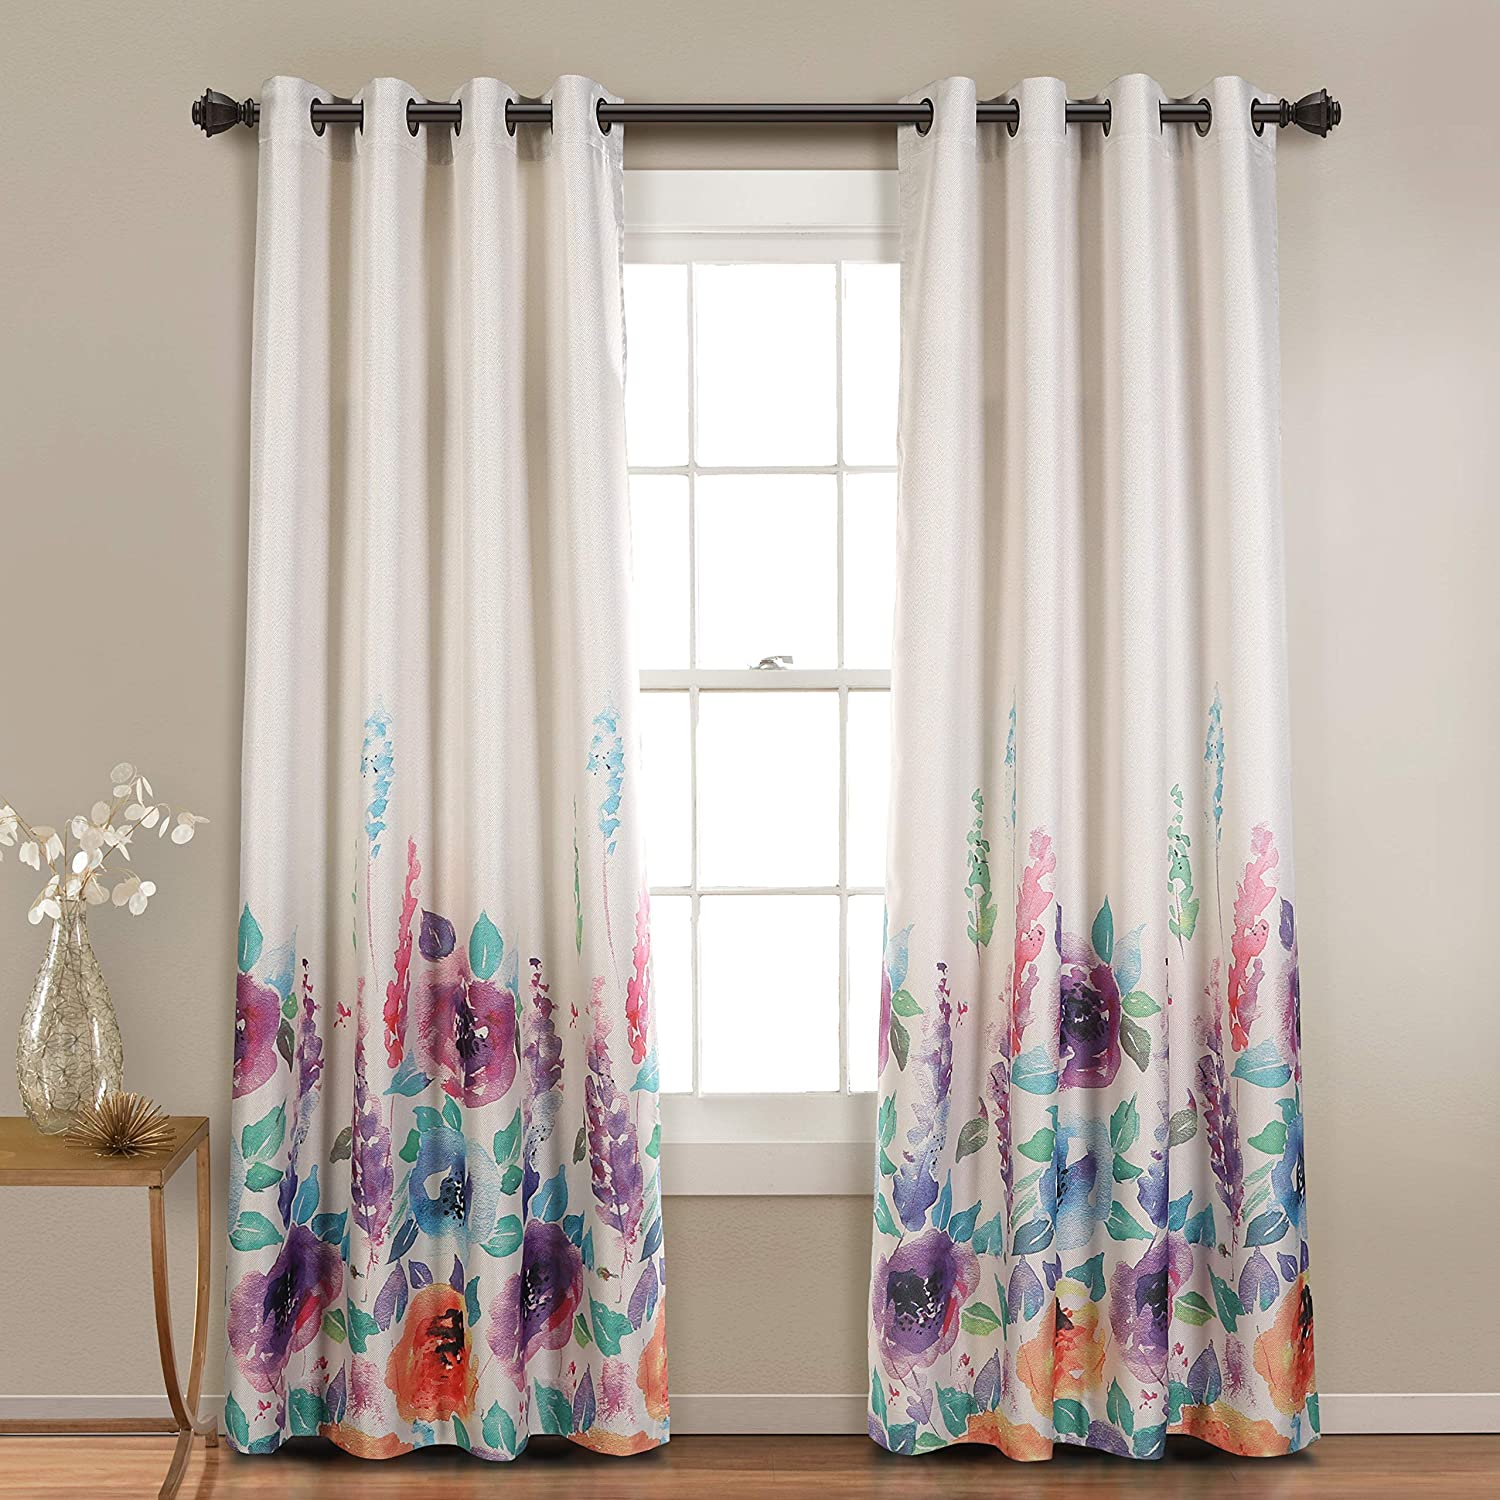 Mysky Home Premium Floral Curtains For Bedroom Natural Linen Textured Room Darkening Curtains With Flower Print Design Set Of 1 Curtain Panel 52 X 95 Inch Purple Home Kitchen Amazon Com